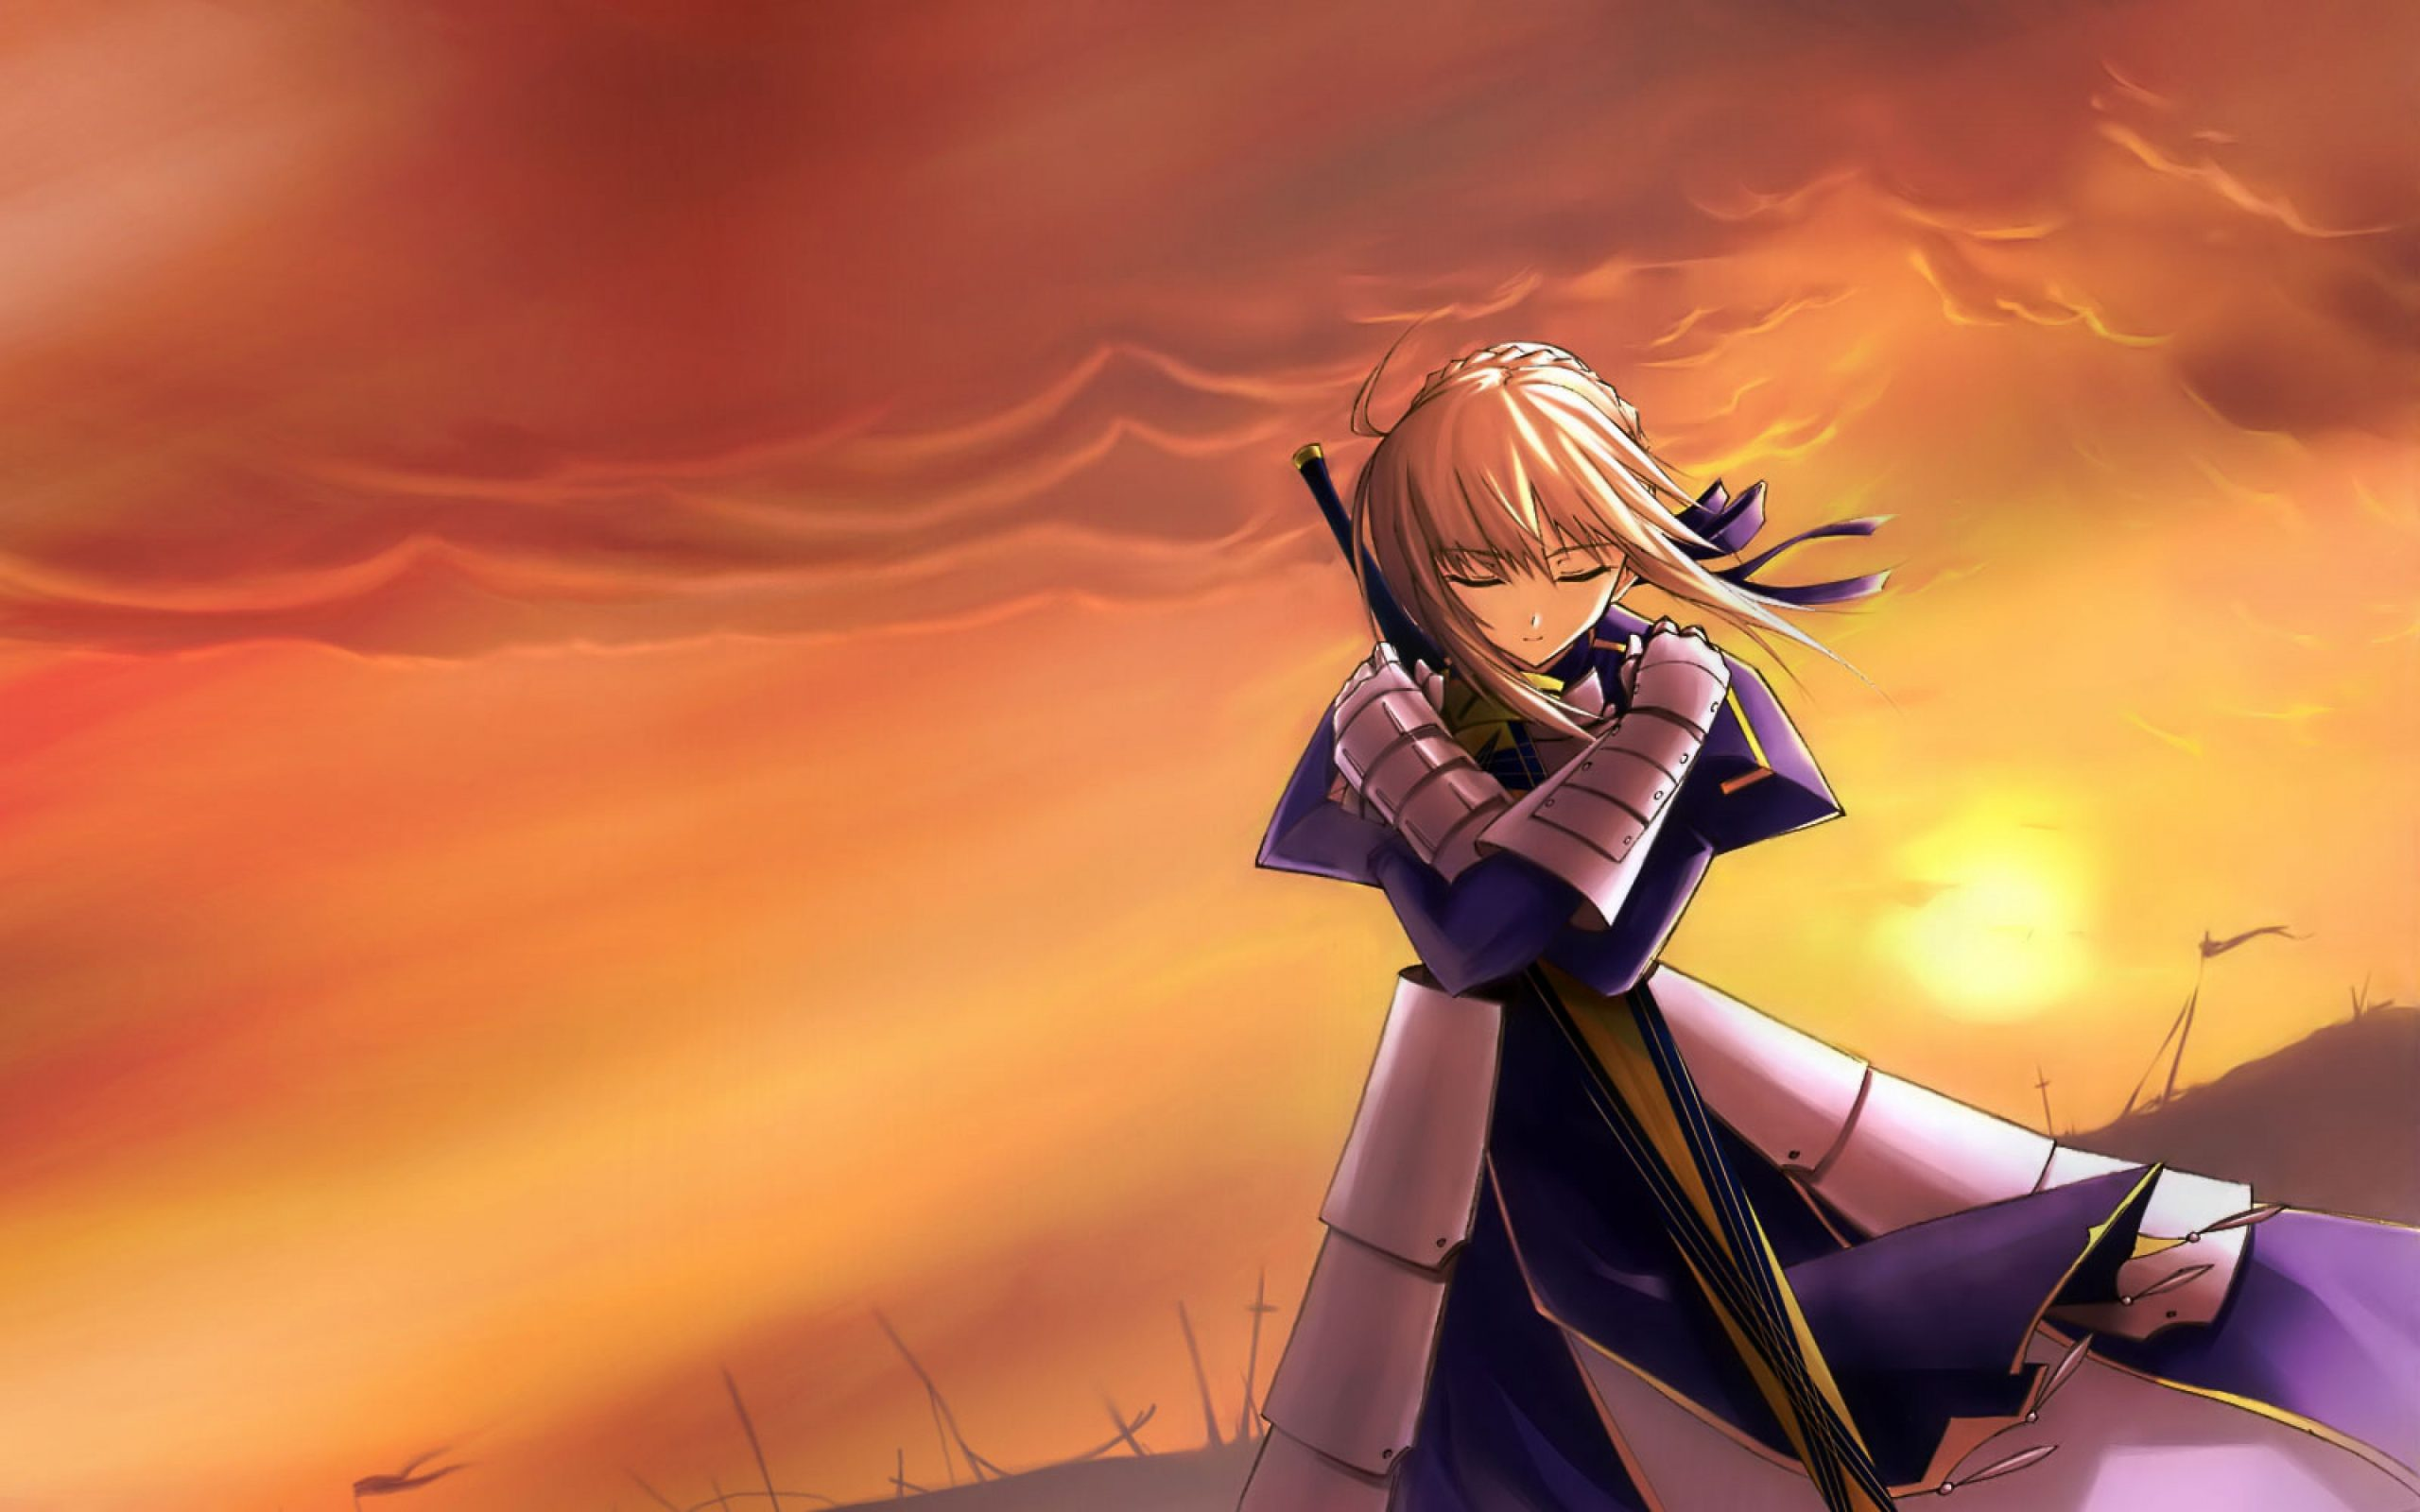 wallpaper wiki best cartoon images fate stay night pic wpd